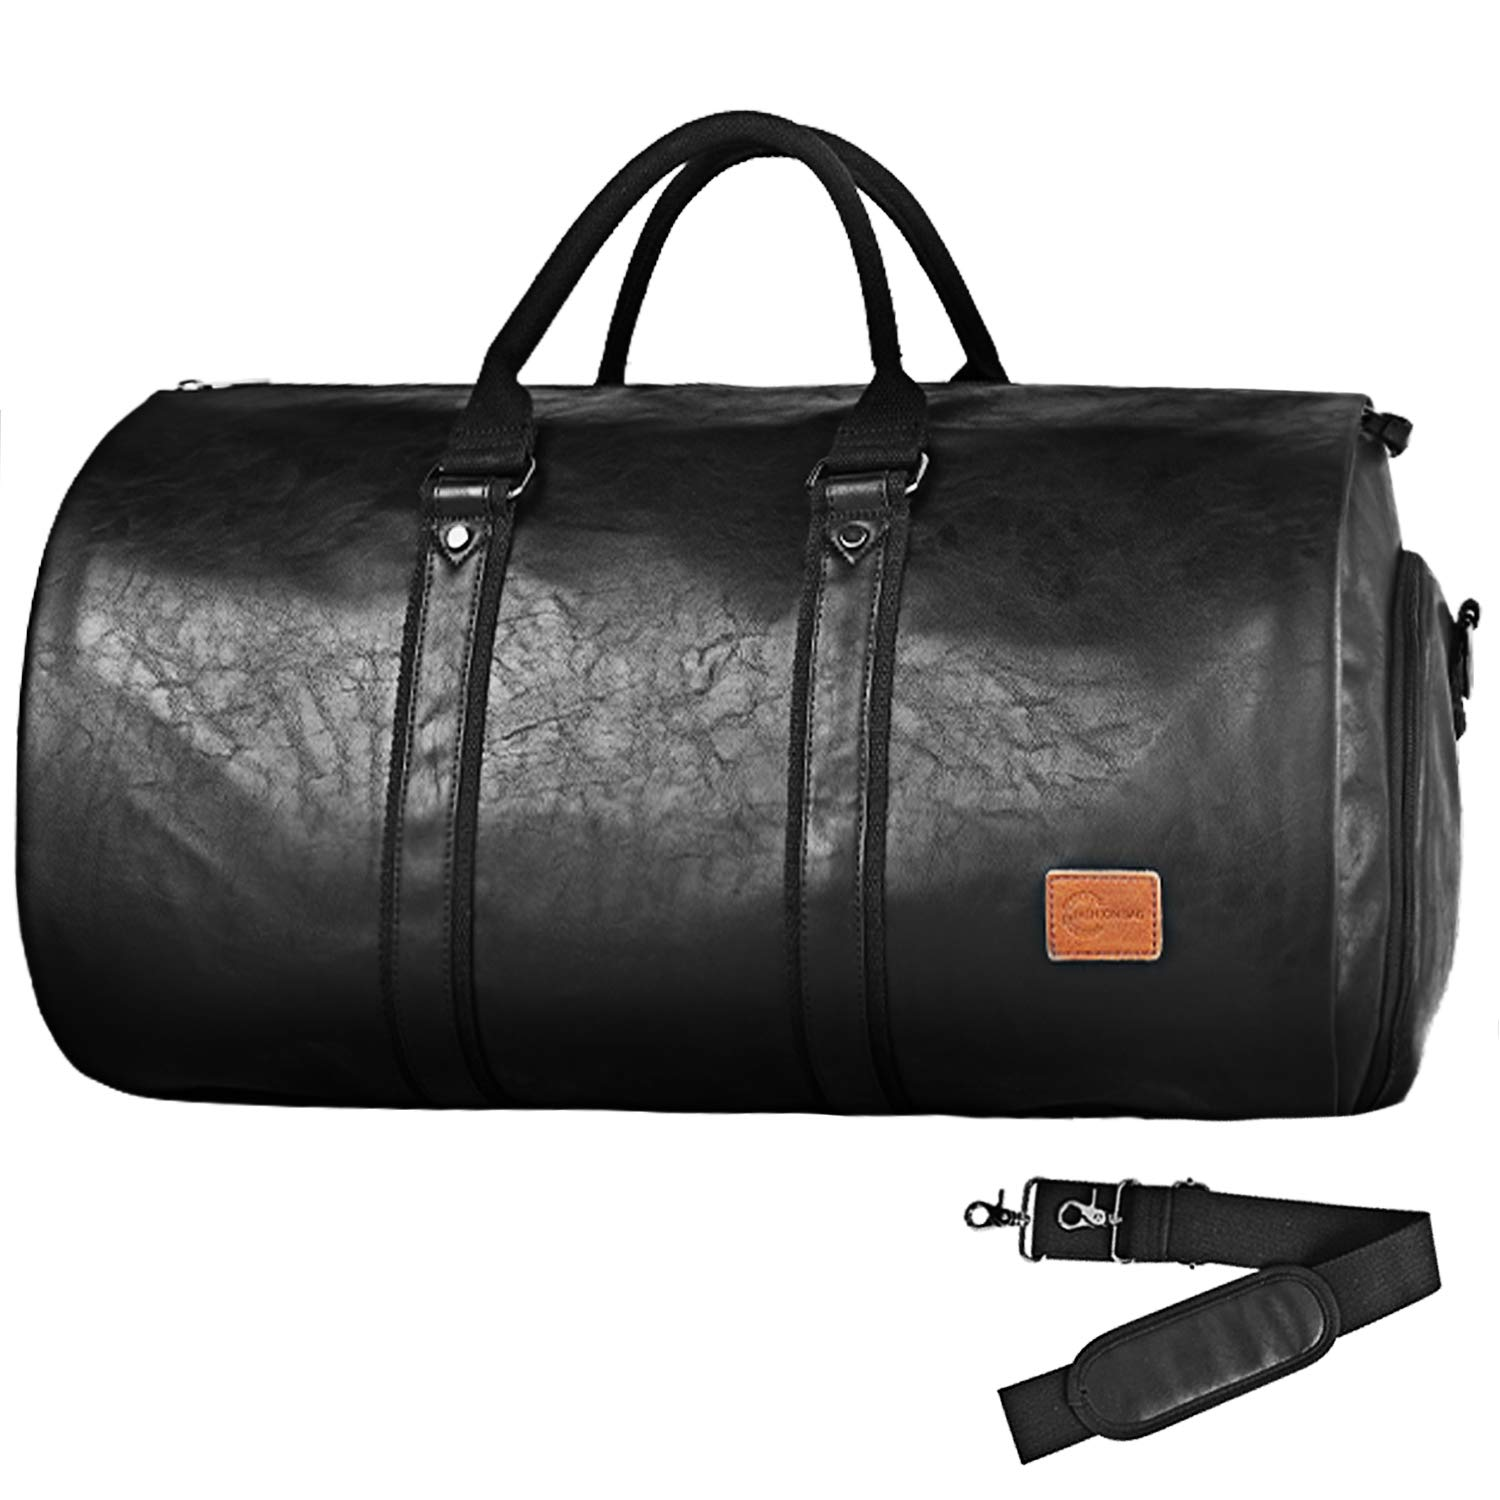 cae1158707fe Convertible Travel Garment Bag,Carry on PU Leather Garment Duffel Bag for  Men - 2 in 1 Hanging Suitcase Suit Business Travel Bag